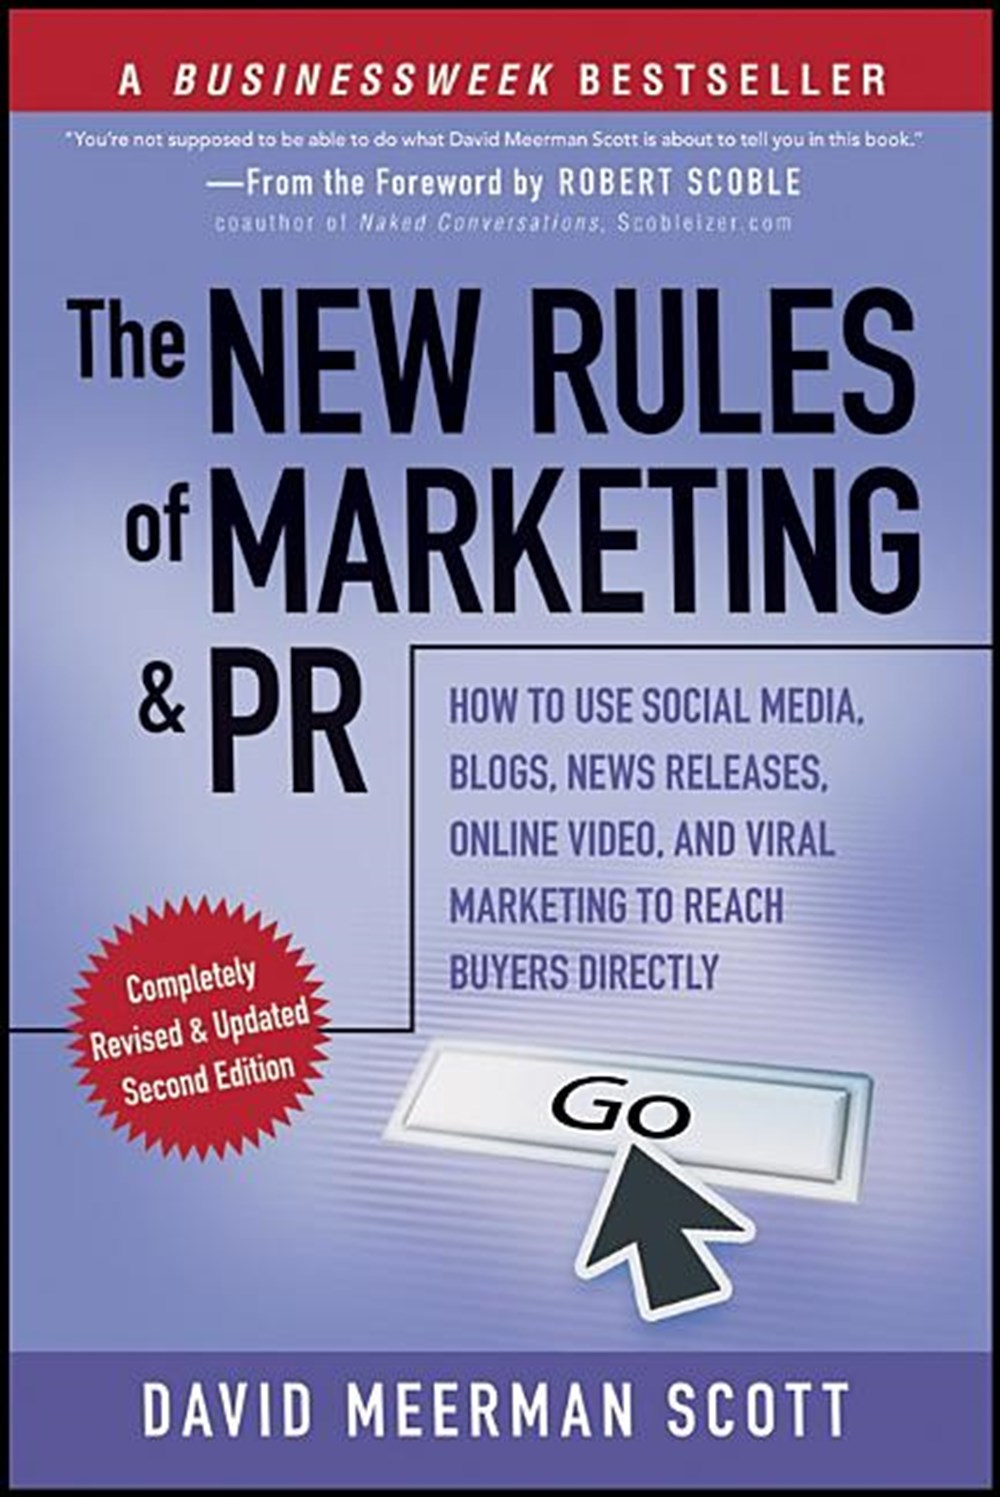 New Rules of Marketing and PR How to Use Social Media, Blogs, News Releases, Online Video, & Viral M